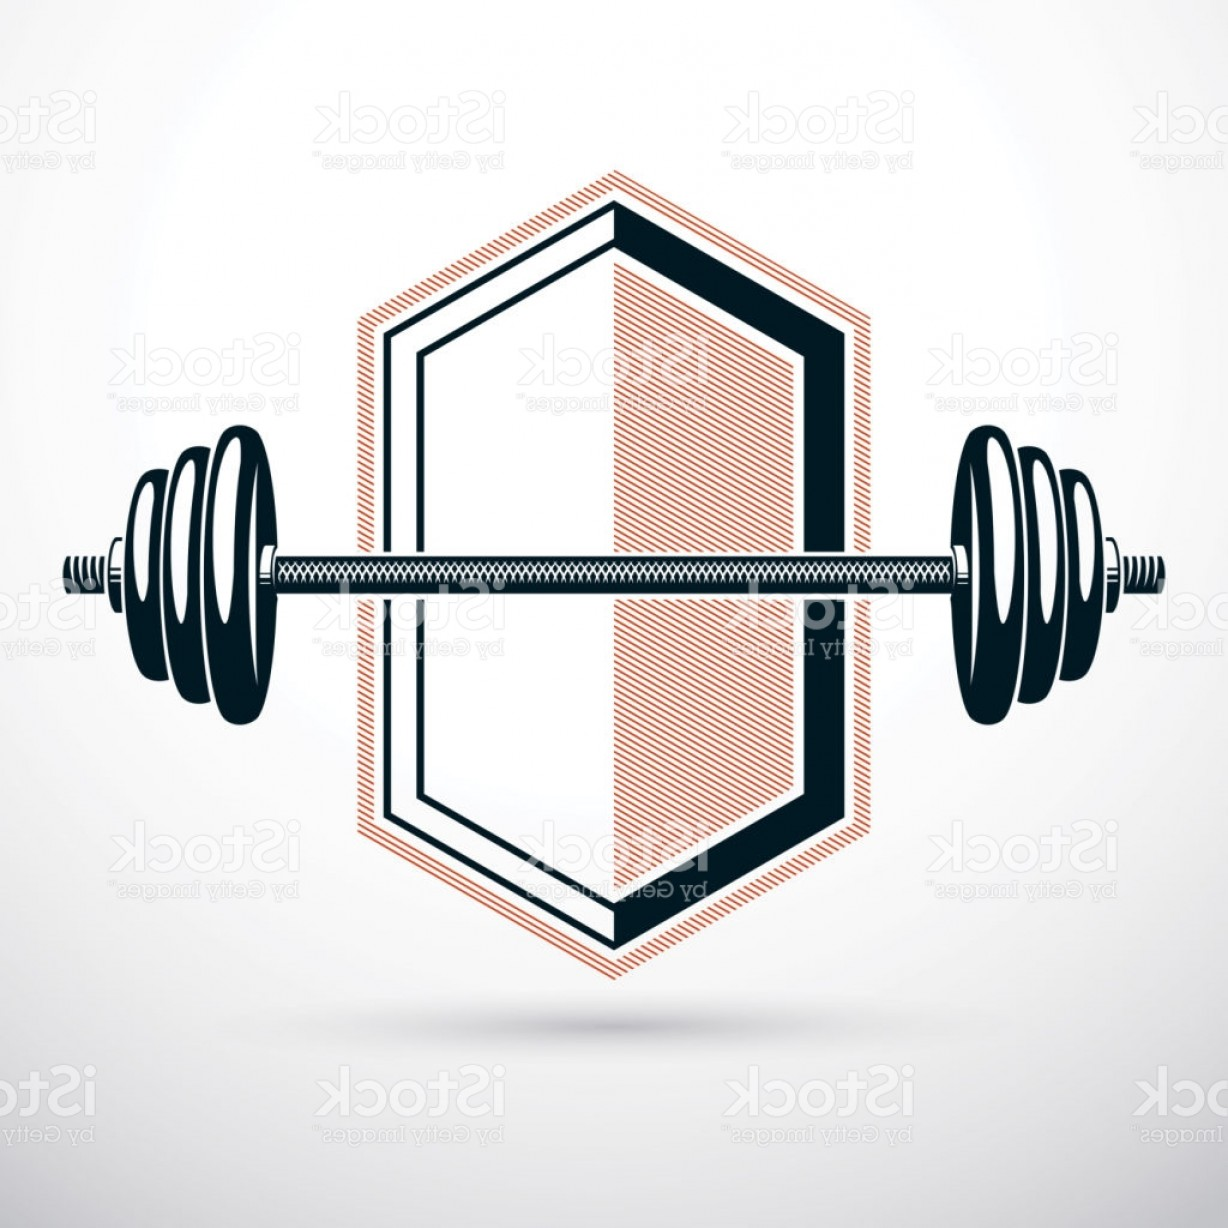 Weightlifter Vector Art: Barbell Vector Illustration Isolated On White Weight Lifting Gym Symbol Gm